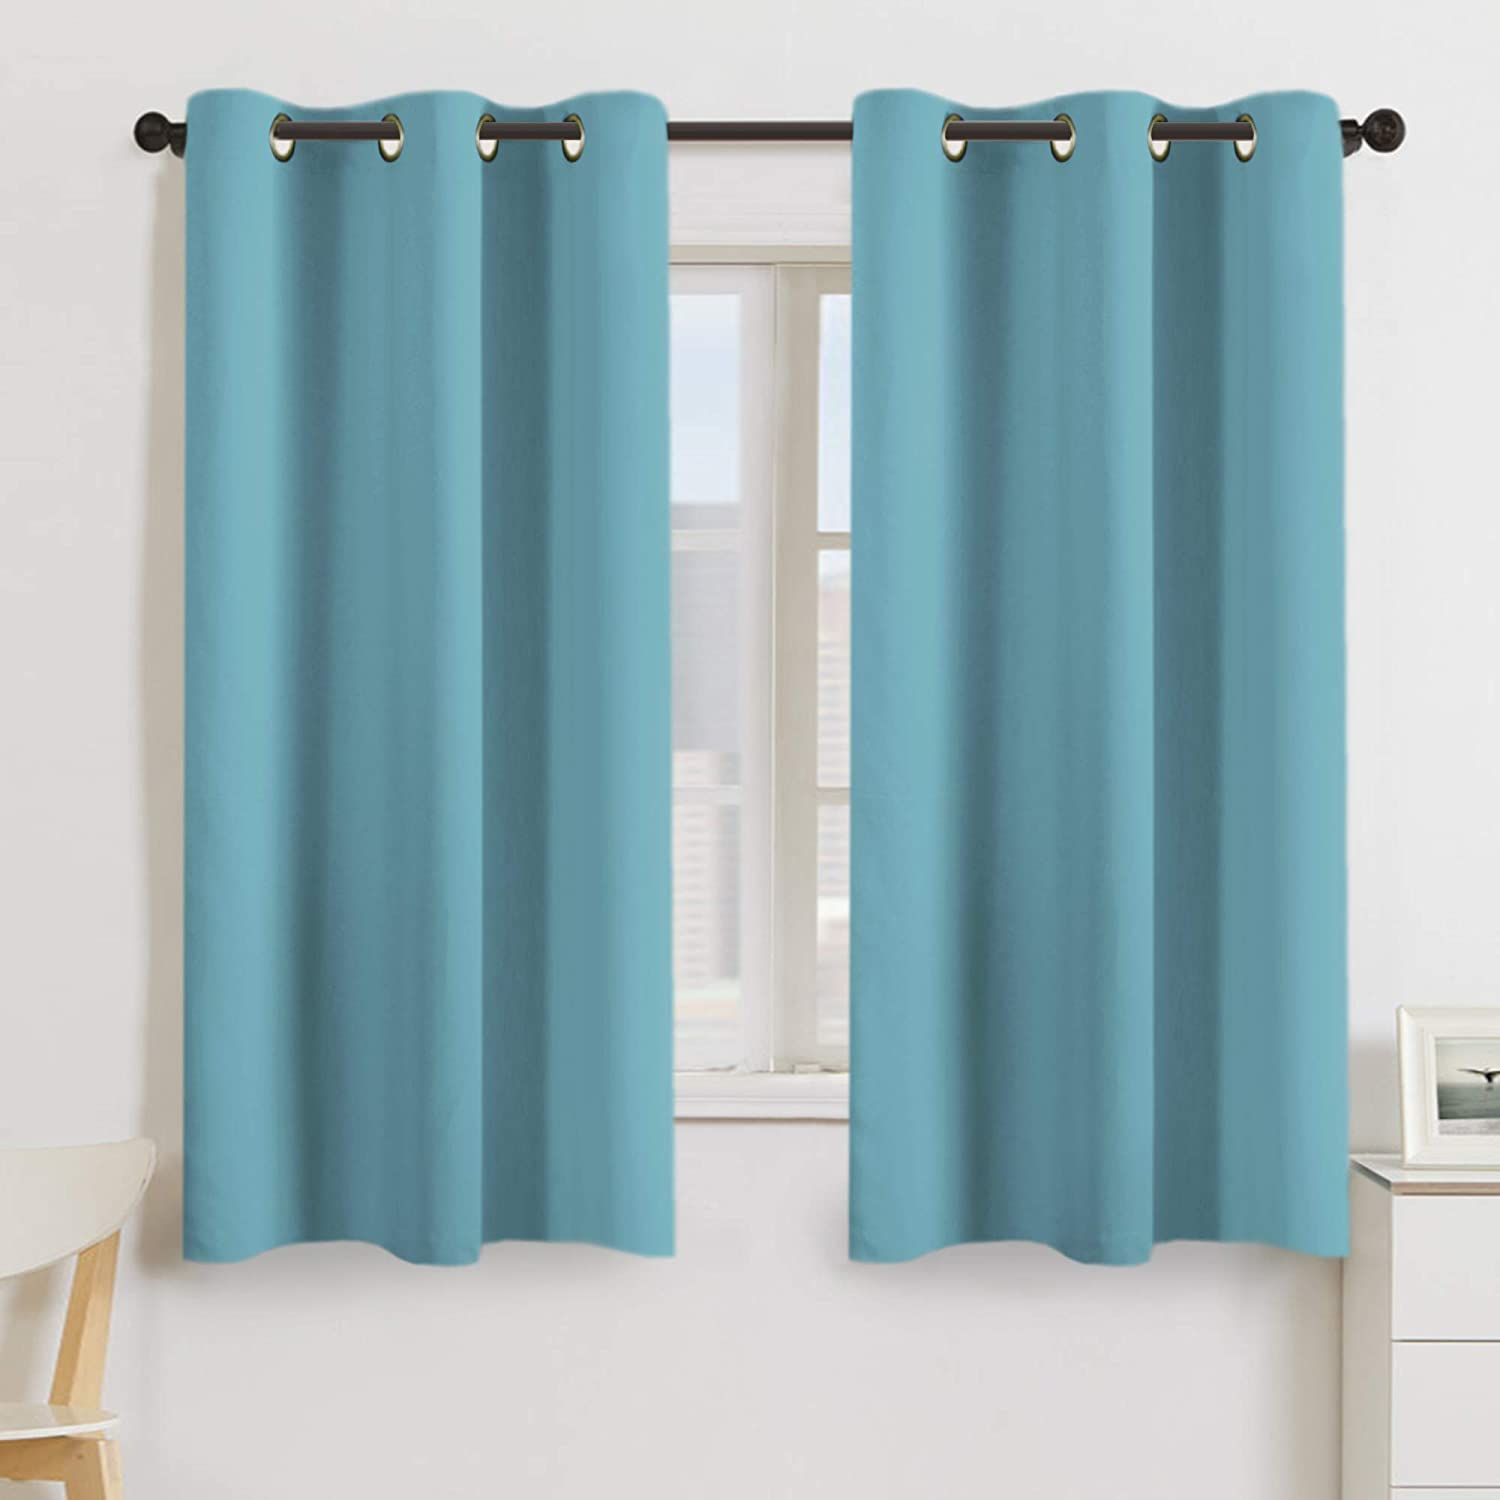 Turquoize Blackout Curtains Panels for Bedroom Ultra Soft Microfiber Noise Reducing Thermal Insulated Solid Grommet Window Drapes Two Panels, 42 x 63 Inch, Aqua